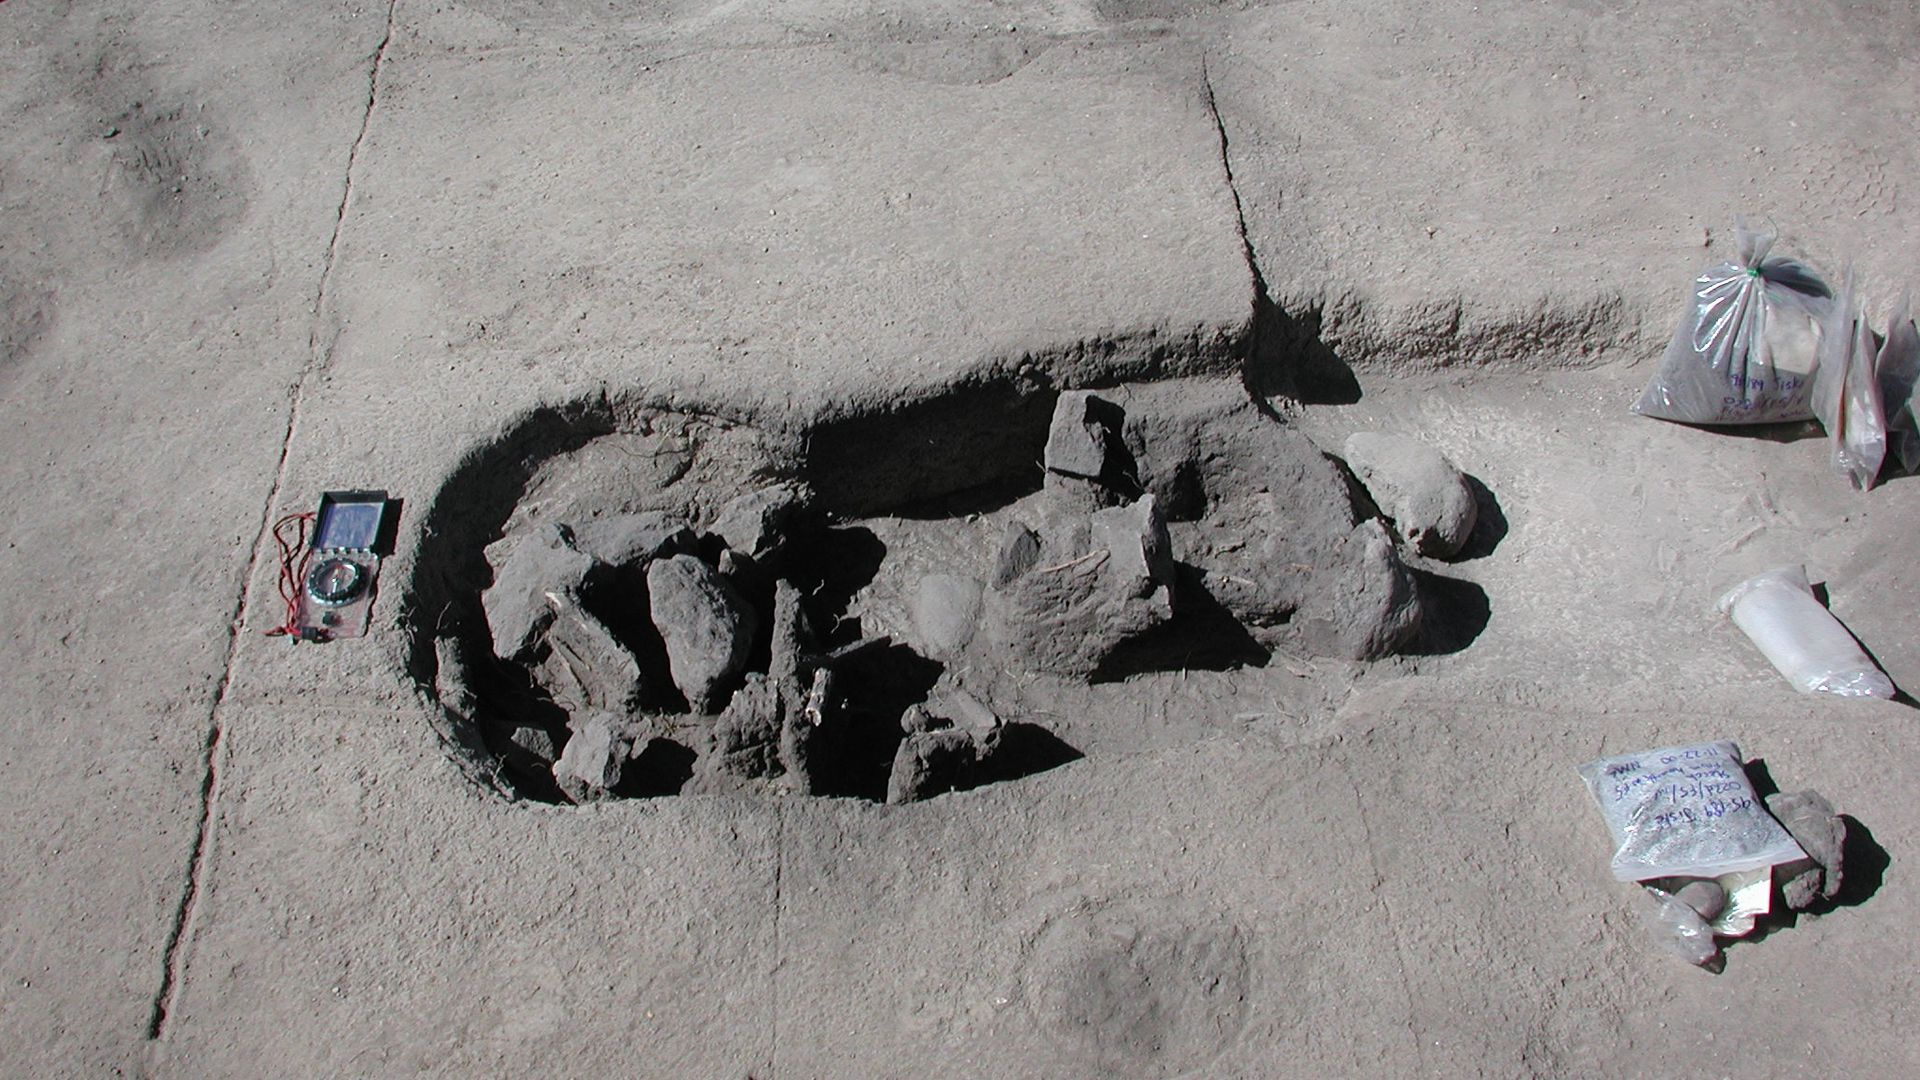 Pre-Columbian archaeolgical burial site at Jiskairumoko, southeast of Puno, Peru.